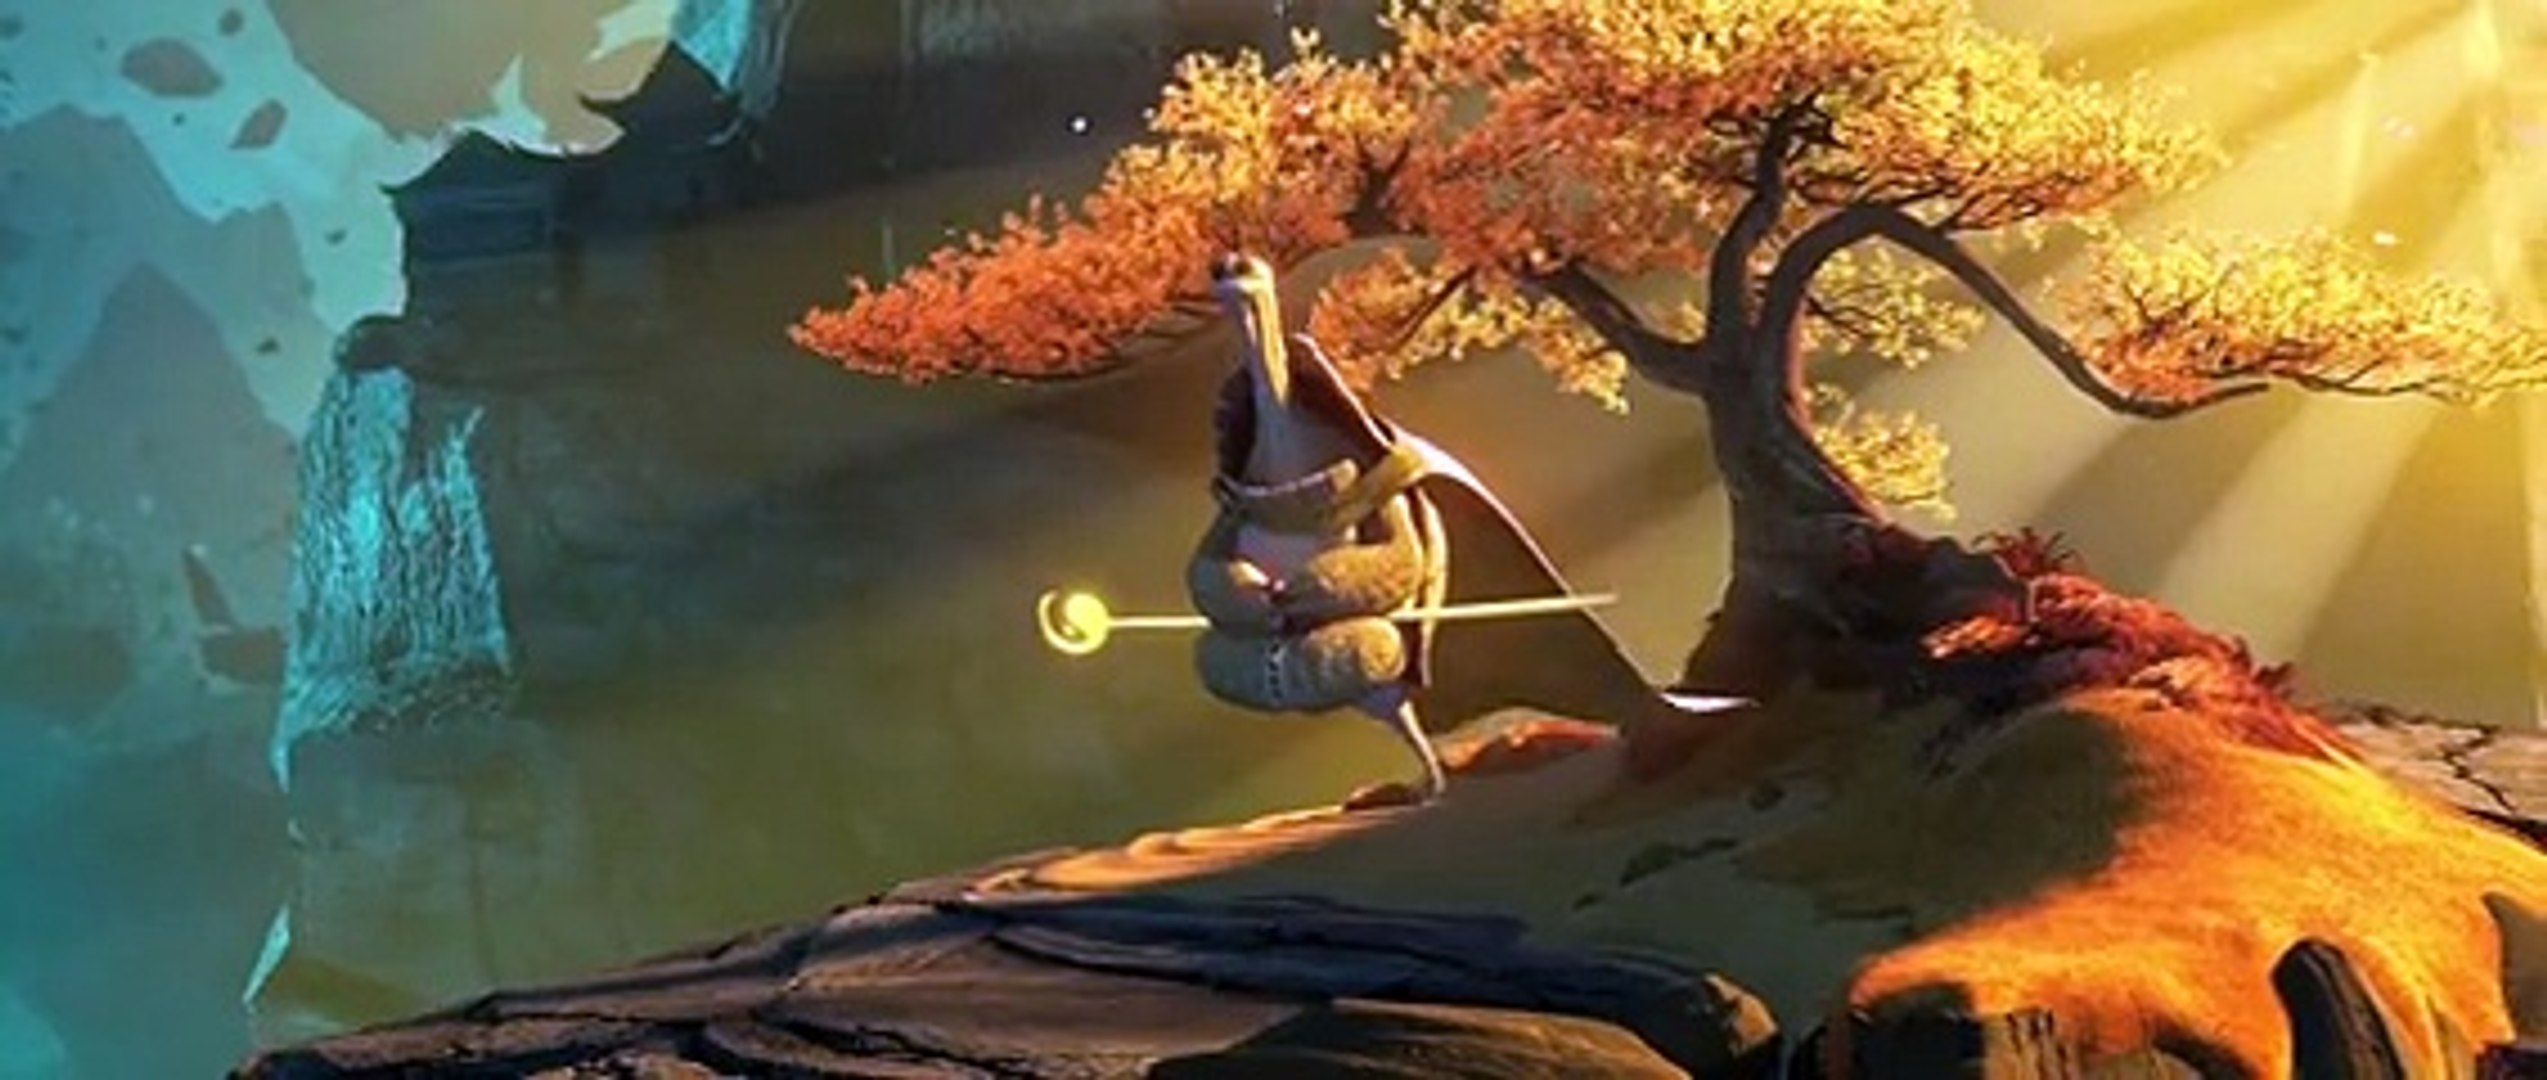 Kung Fu Panda 3 Urdu Video Dailymotion